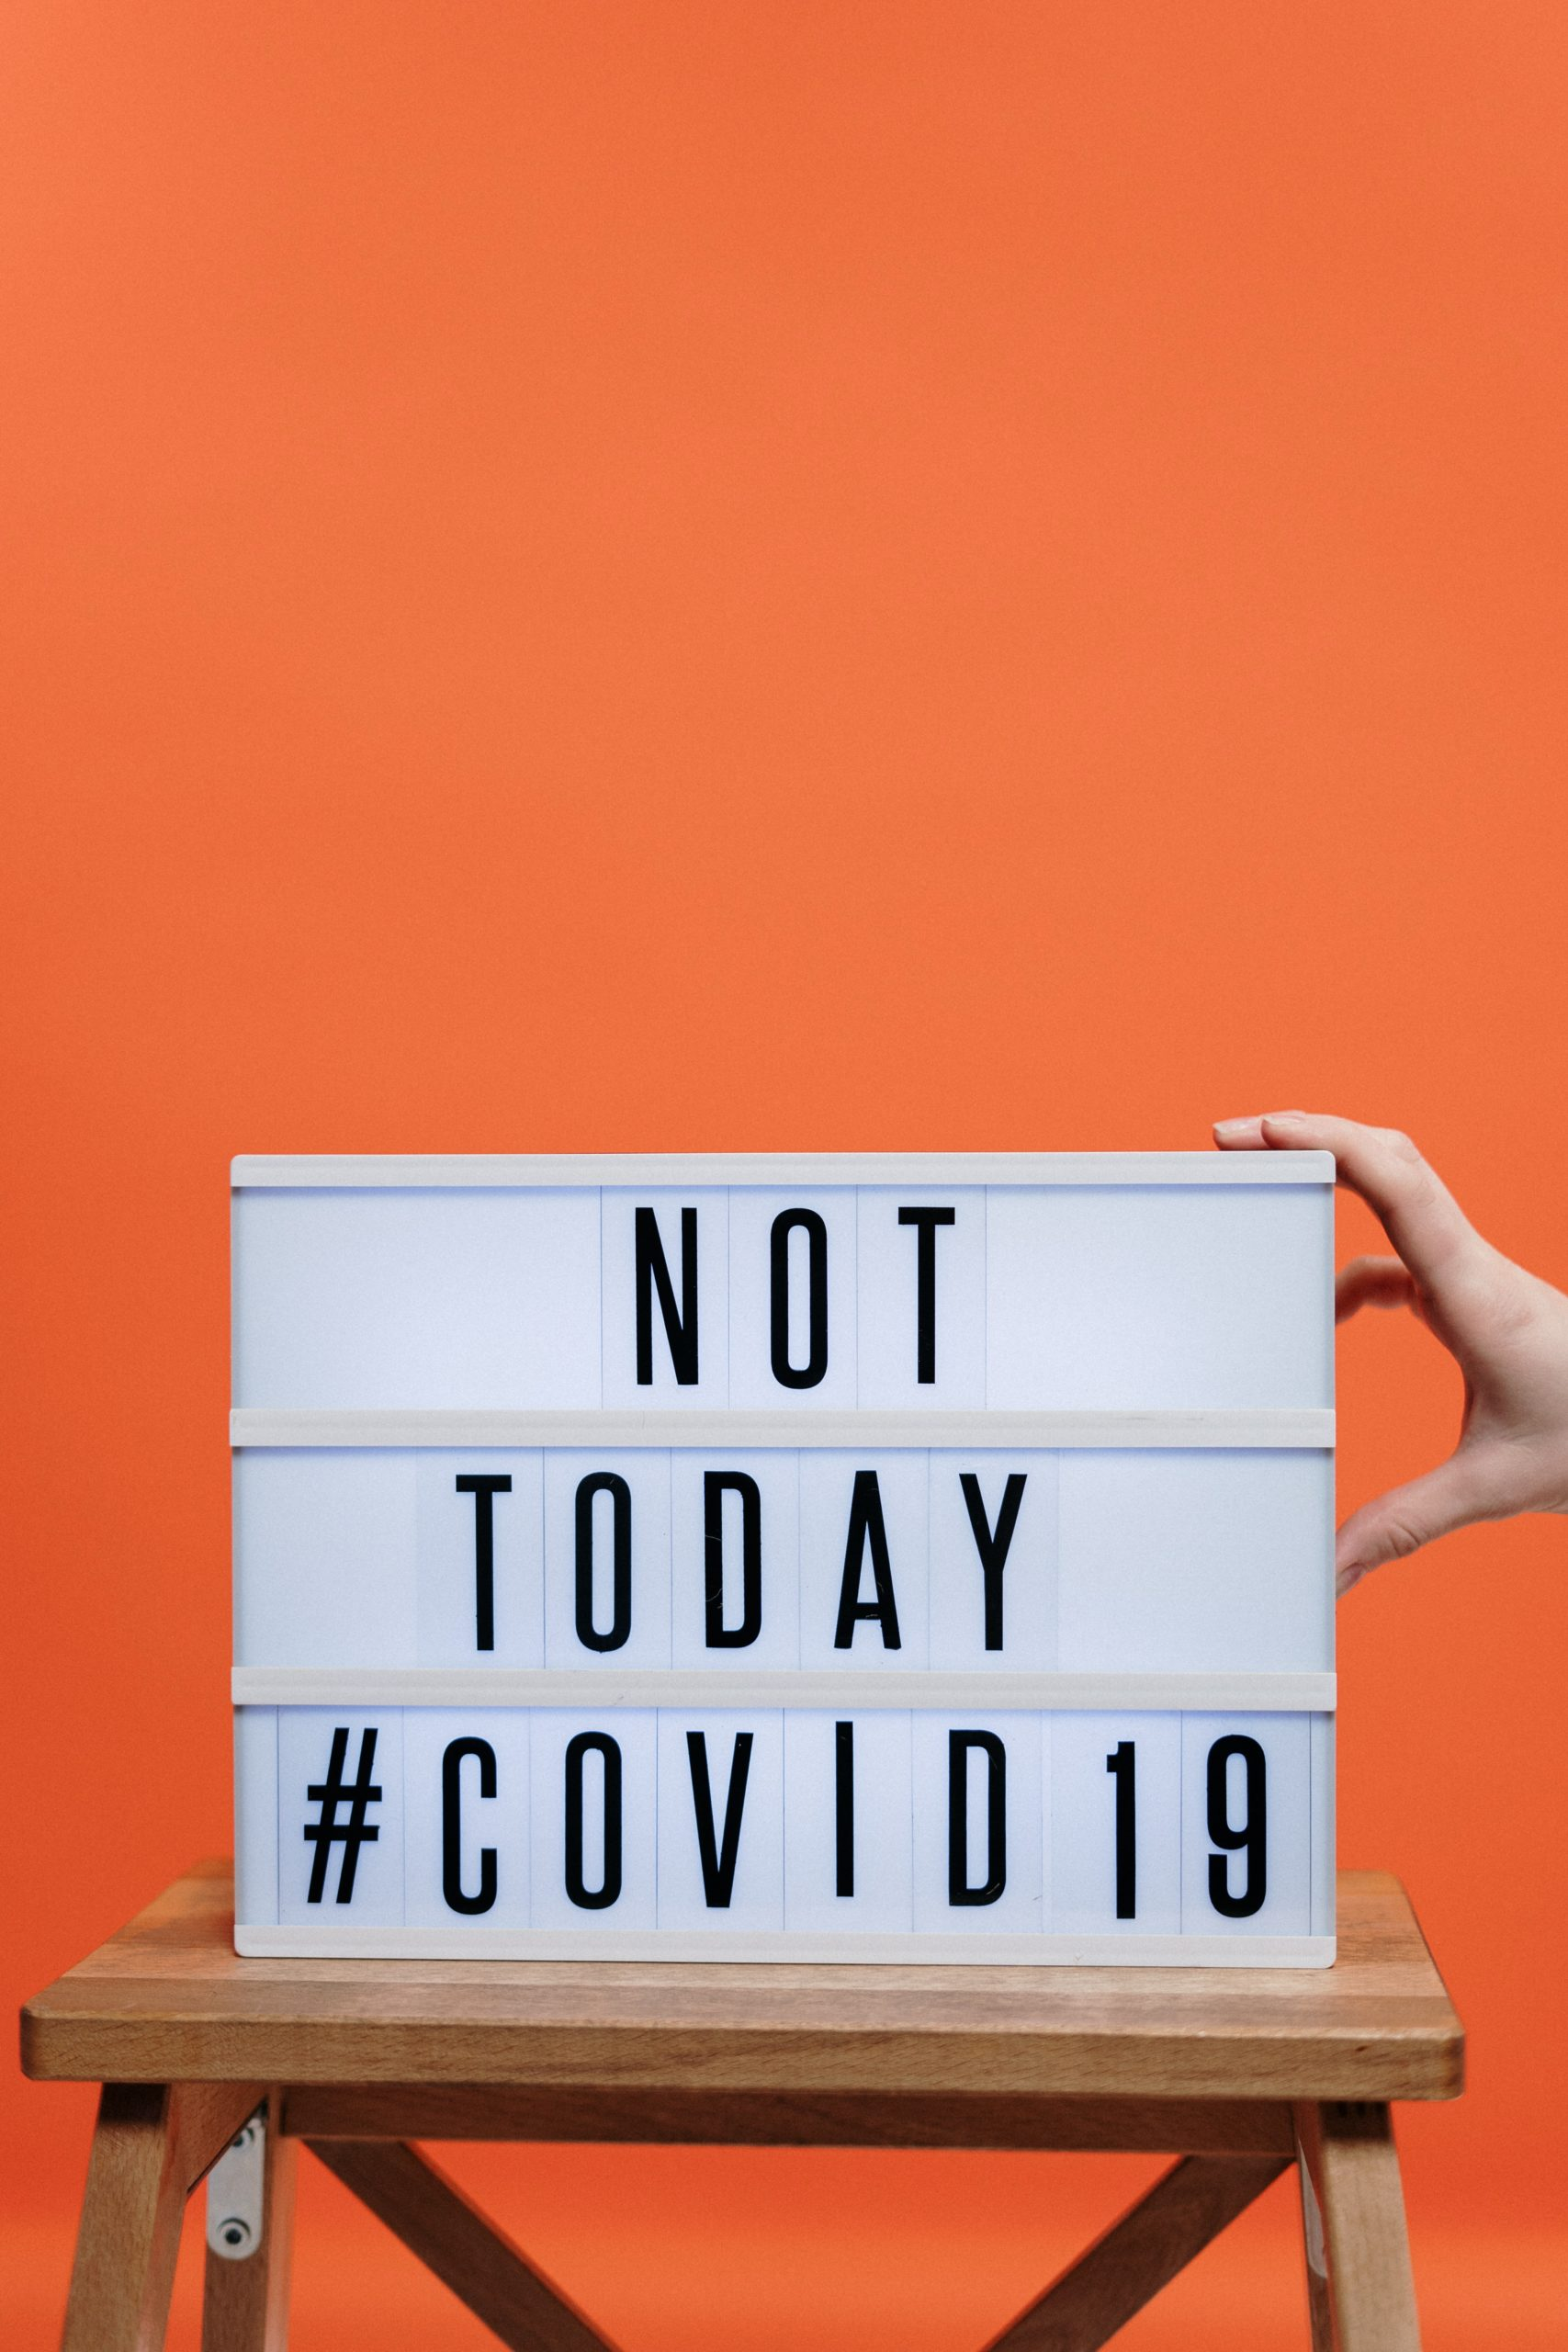 COVID19 – Do you know?